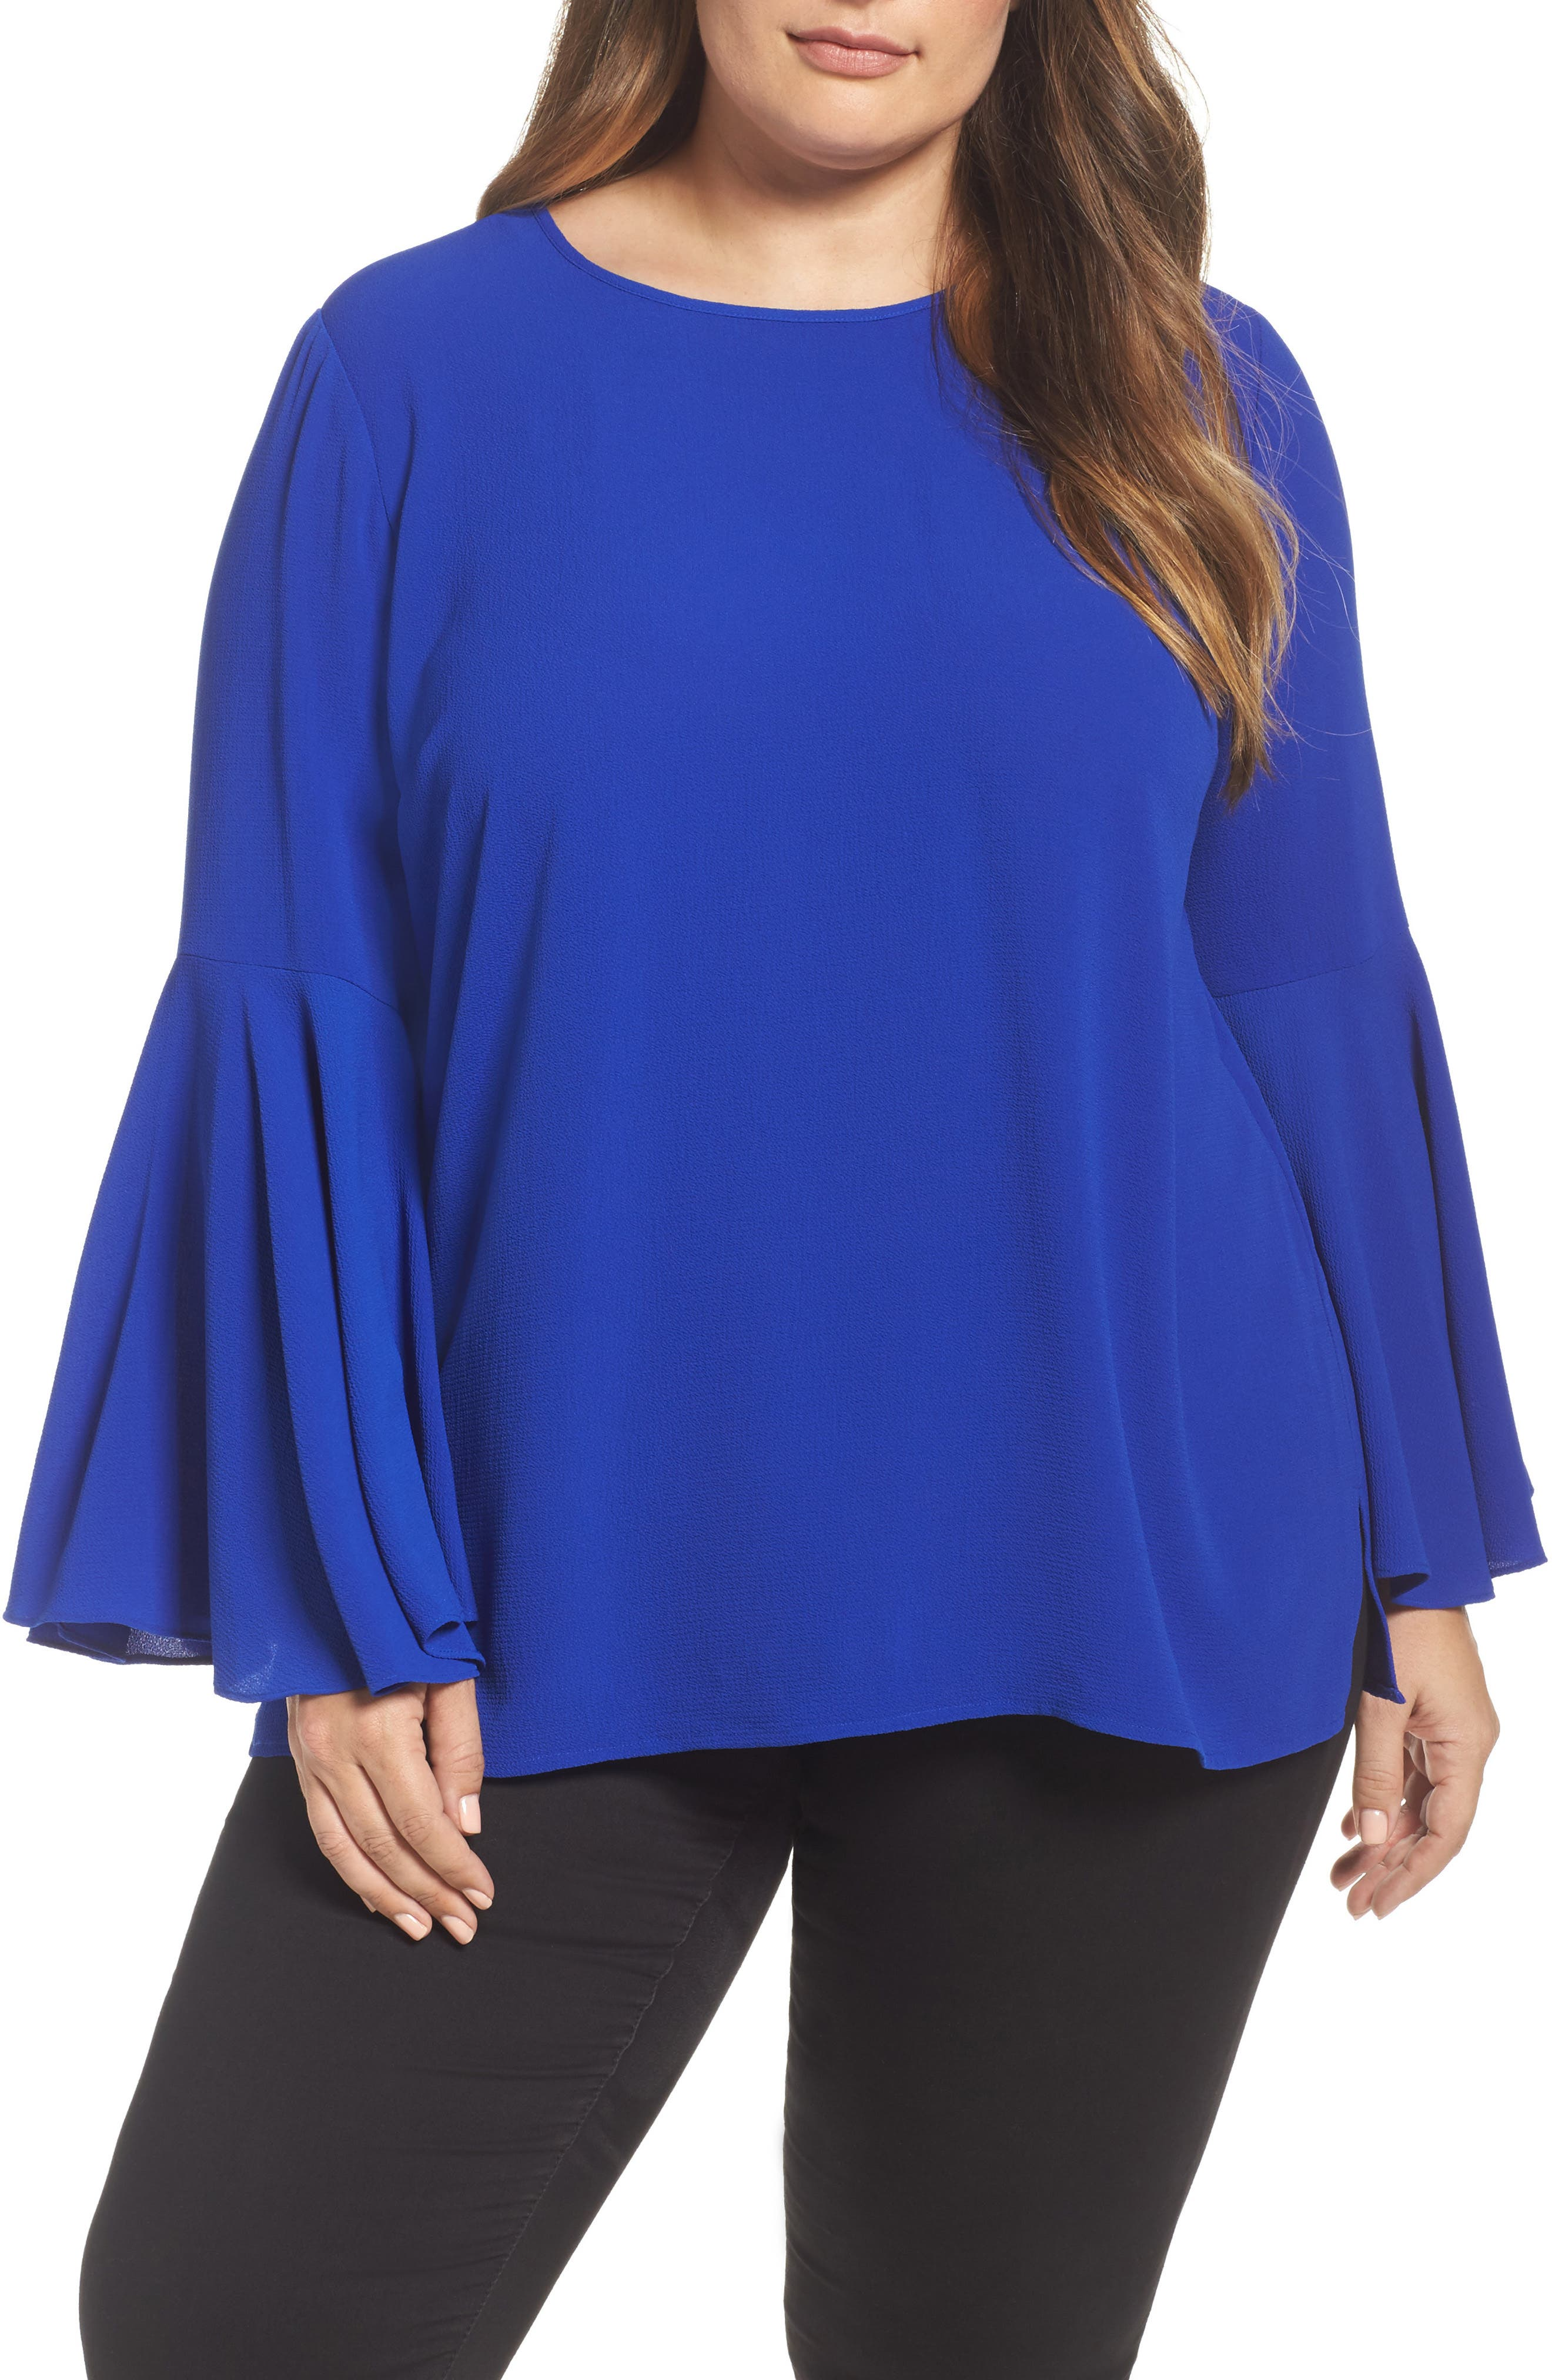 Alternate Image 1 Selected - Vince Camuto Bell Sleeve Blouse (Plus Size)